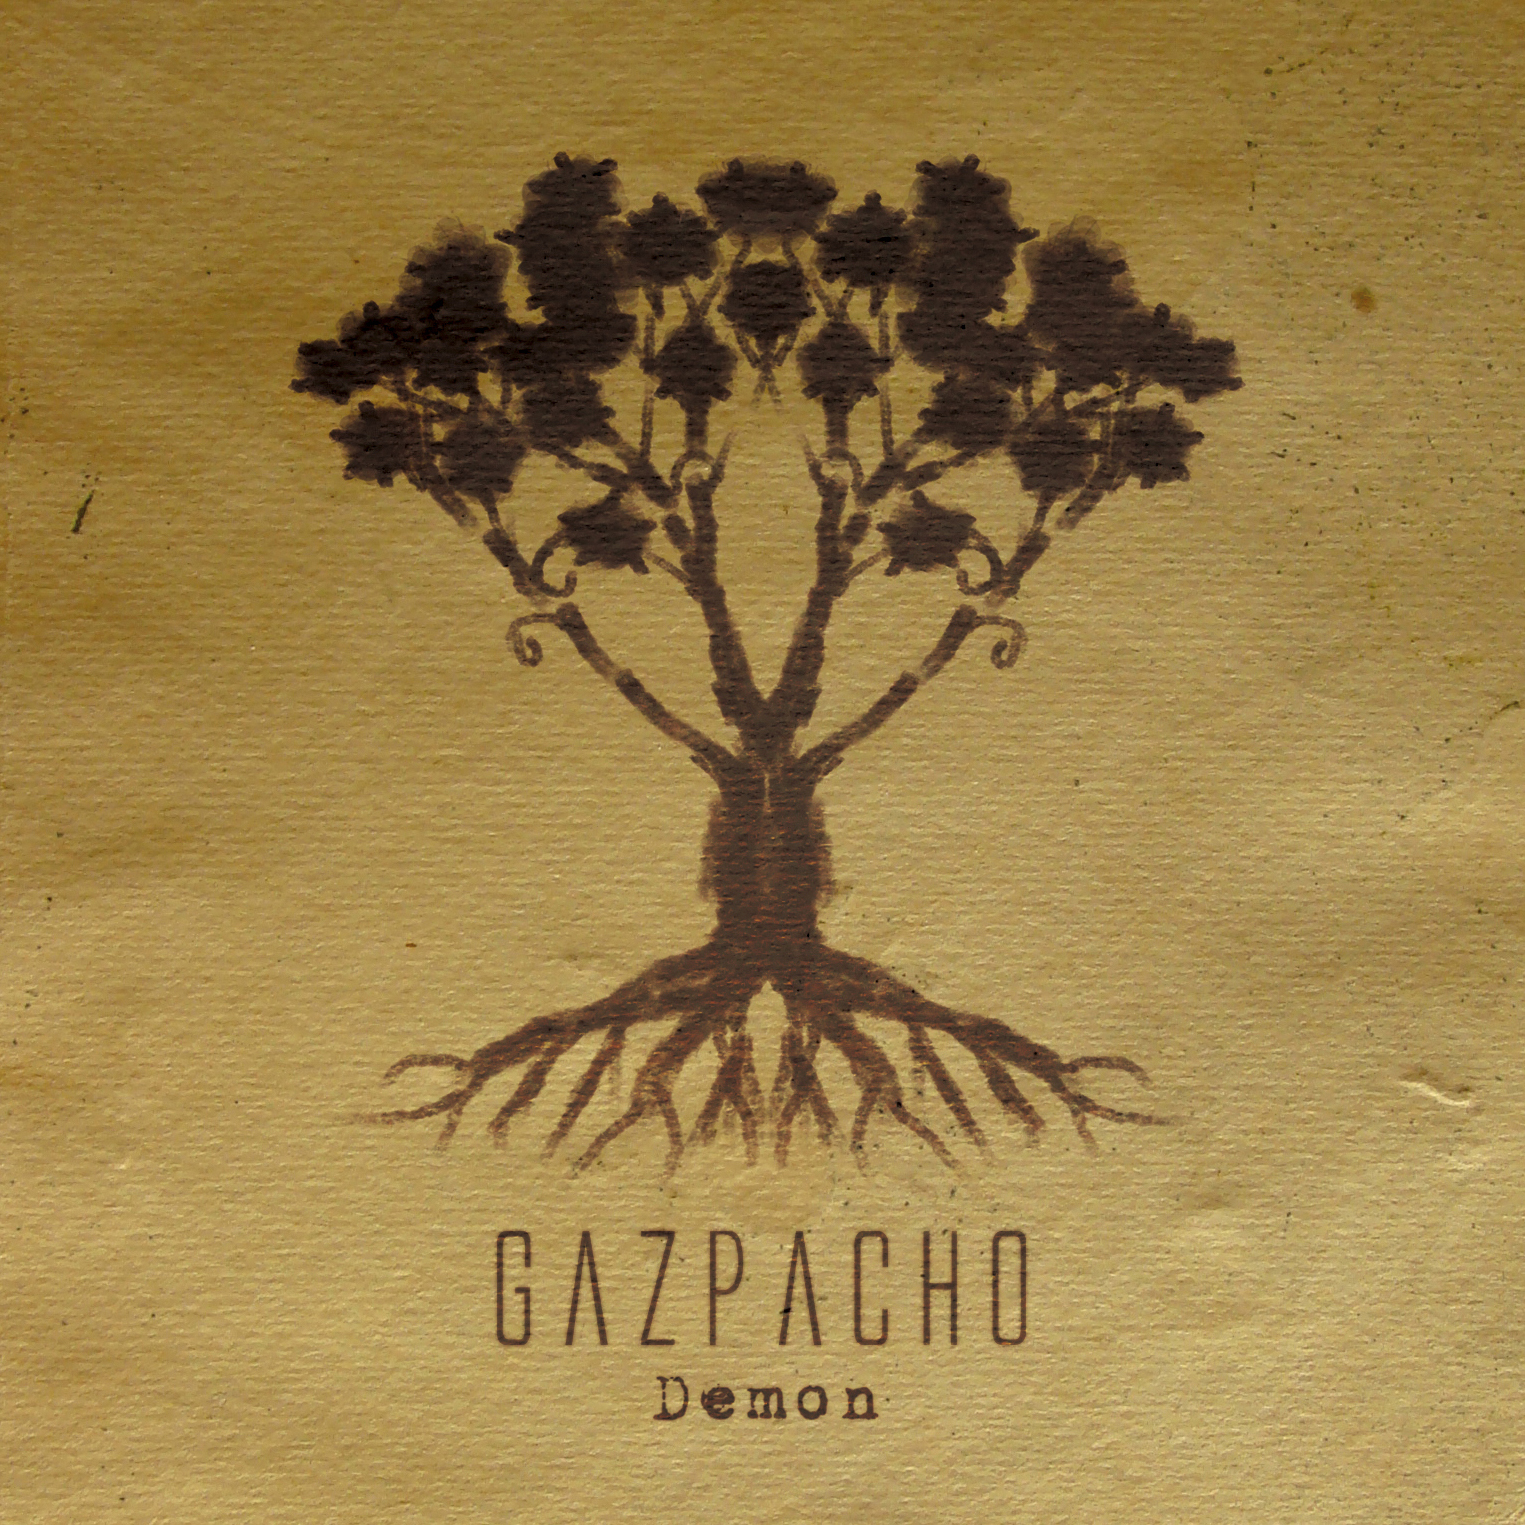 Gazpacho – Demon Review